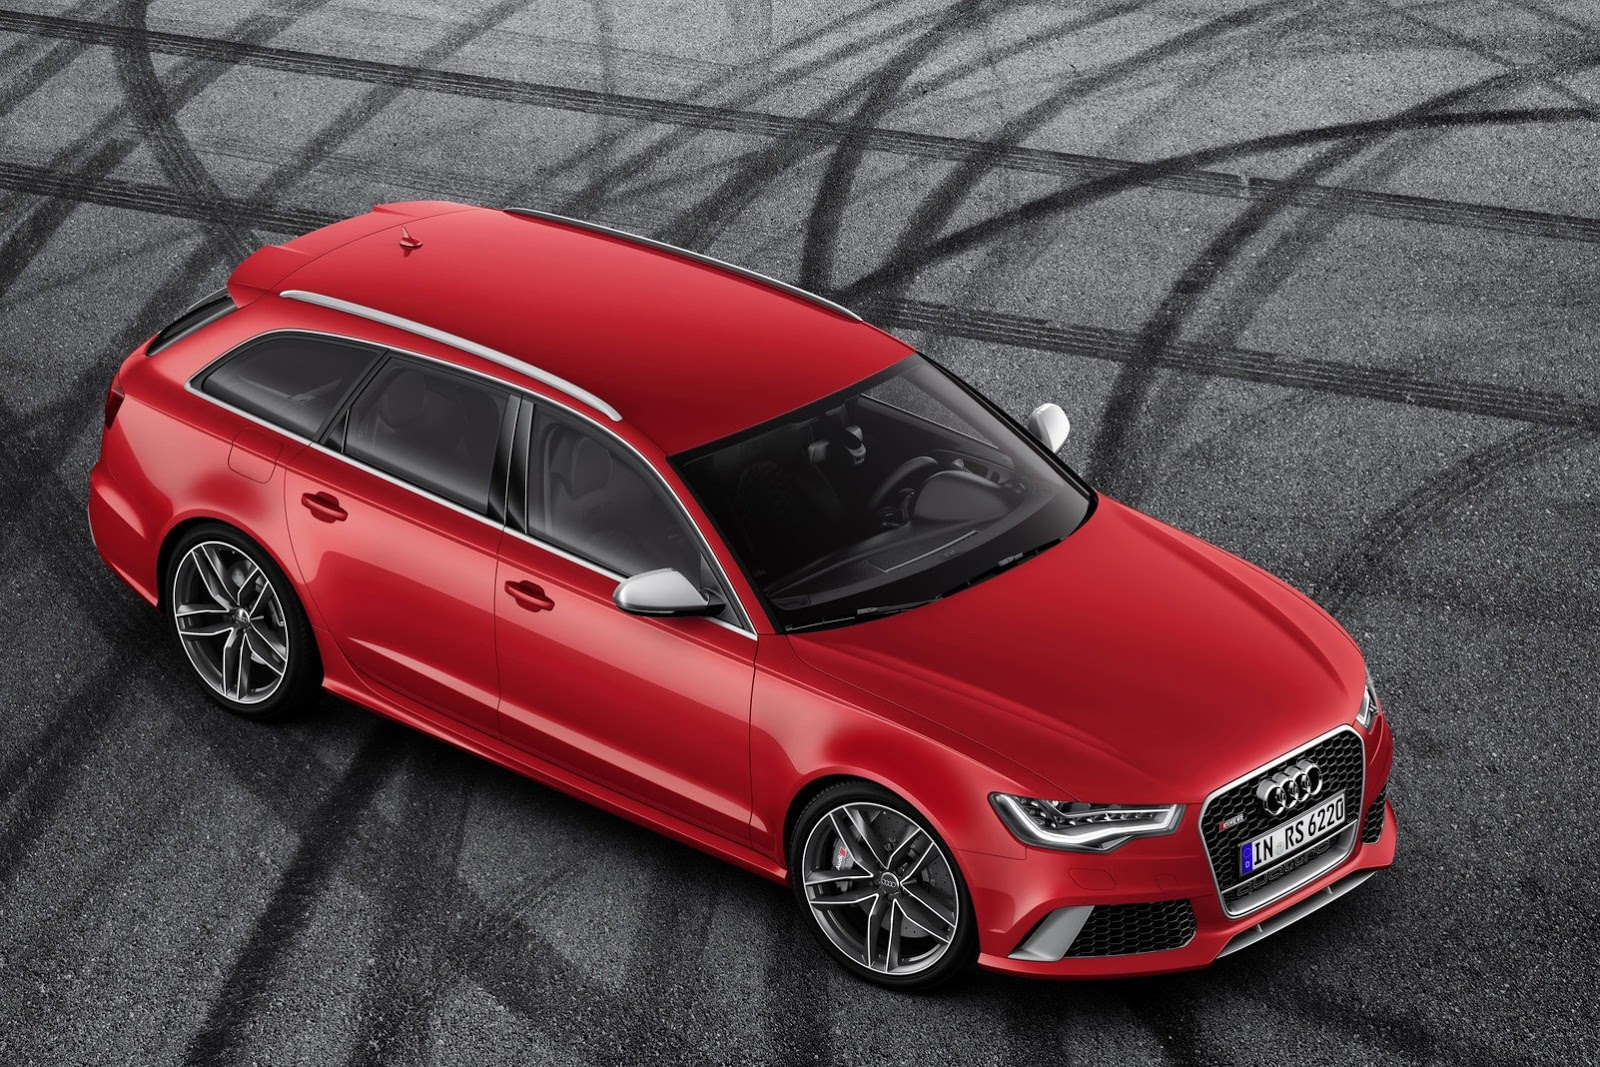 2014 Audi RS6 Avant Front Top View